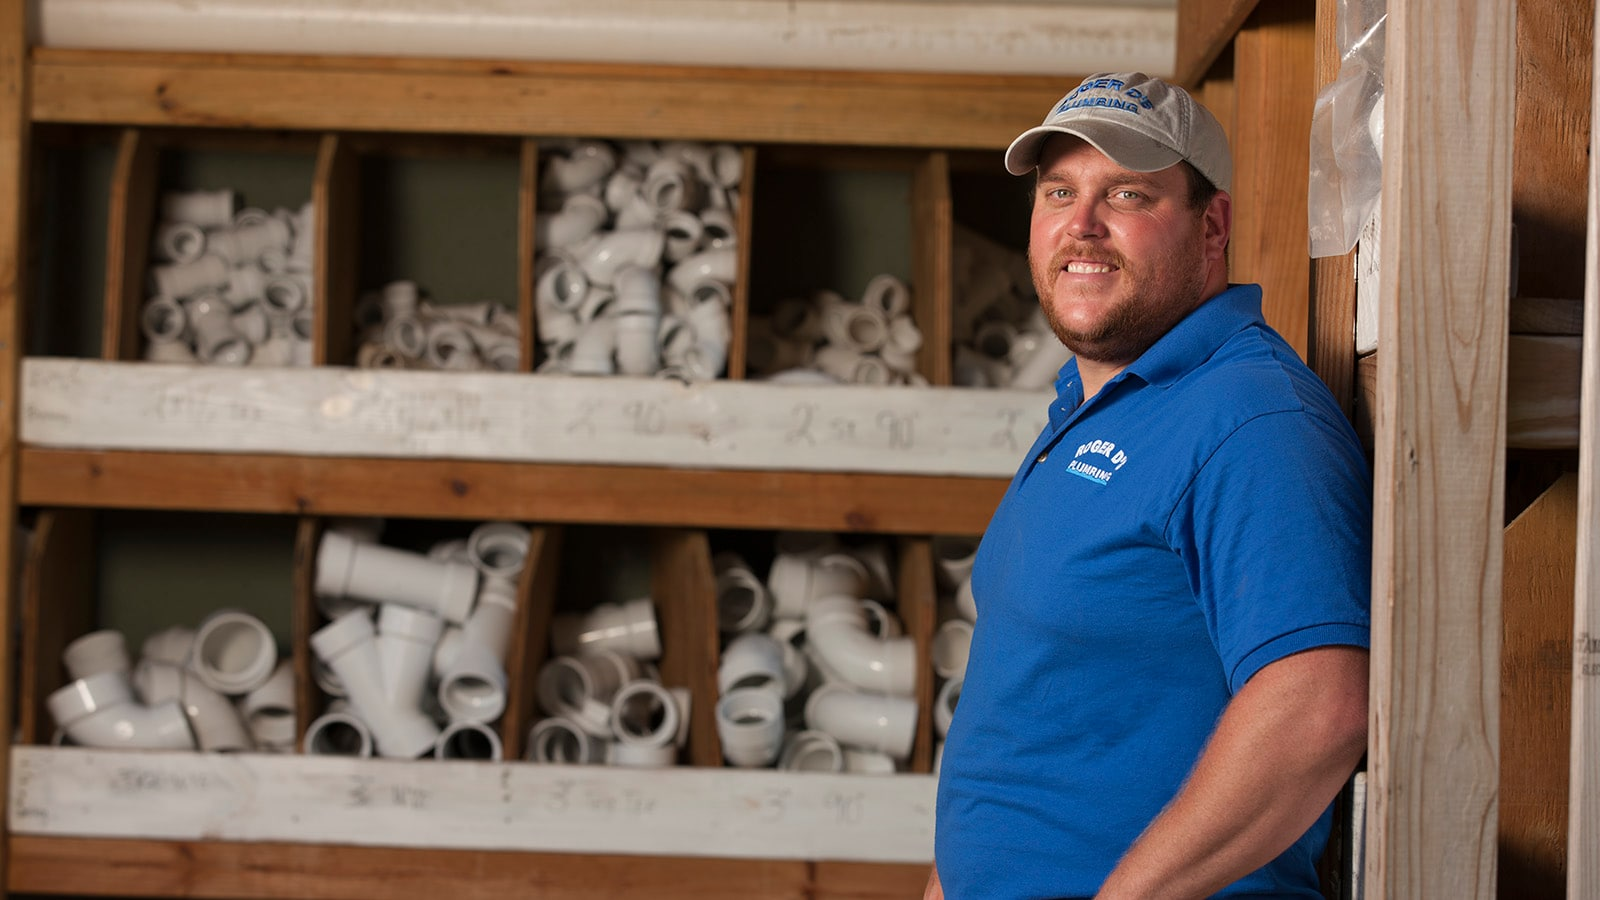 Roger Haislep stands in front of his PVC plumbing parts bins.